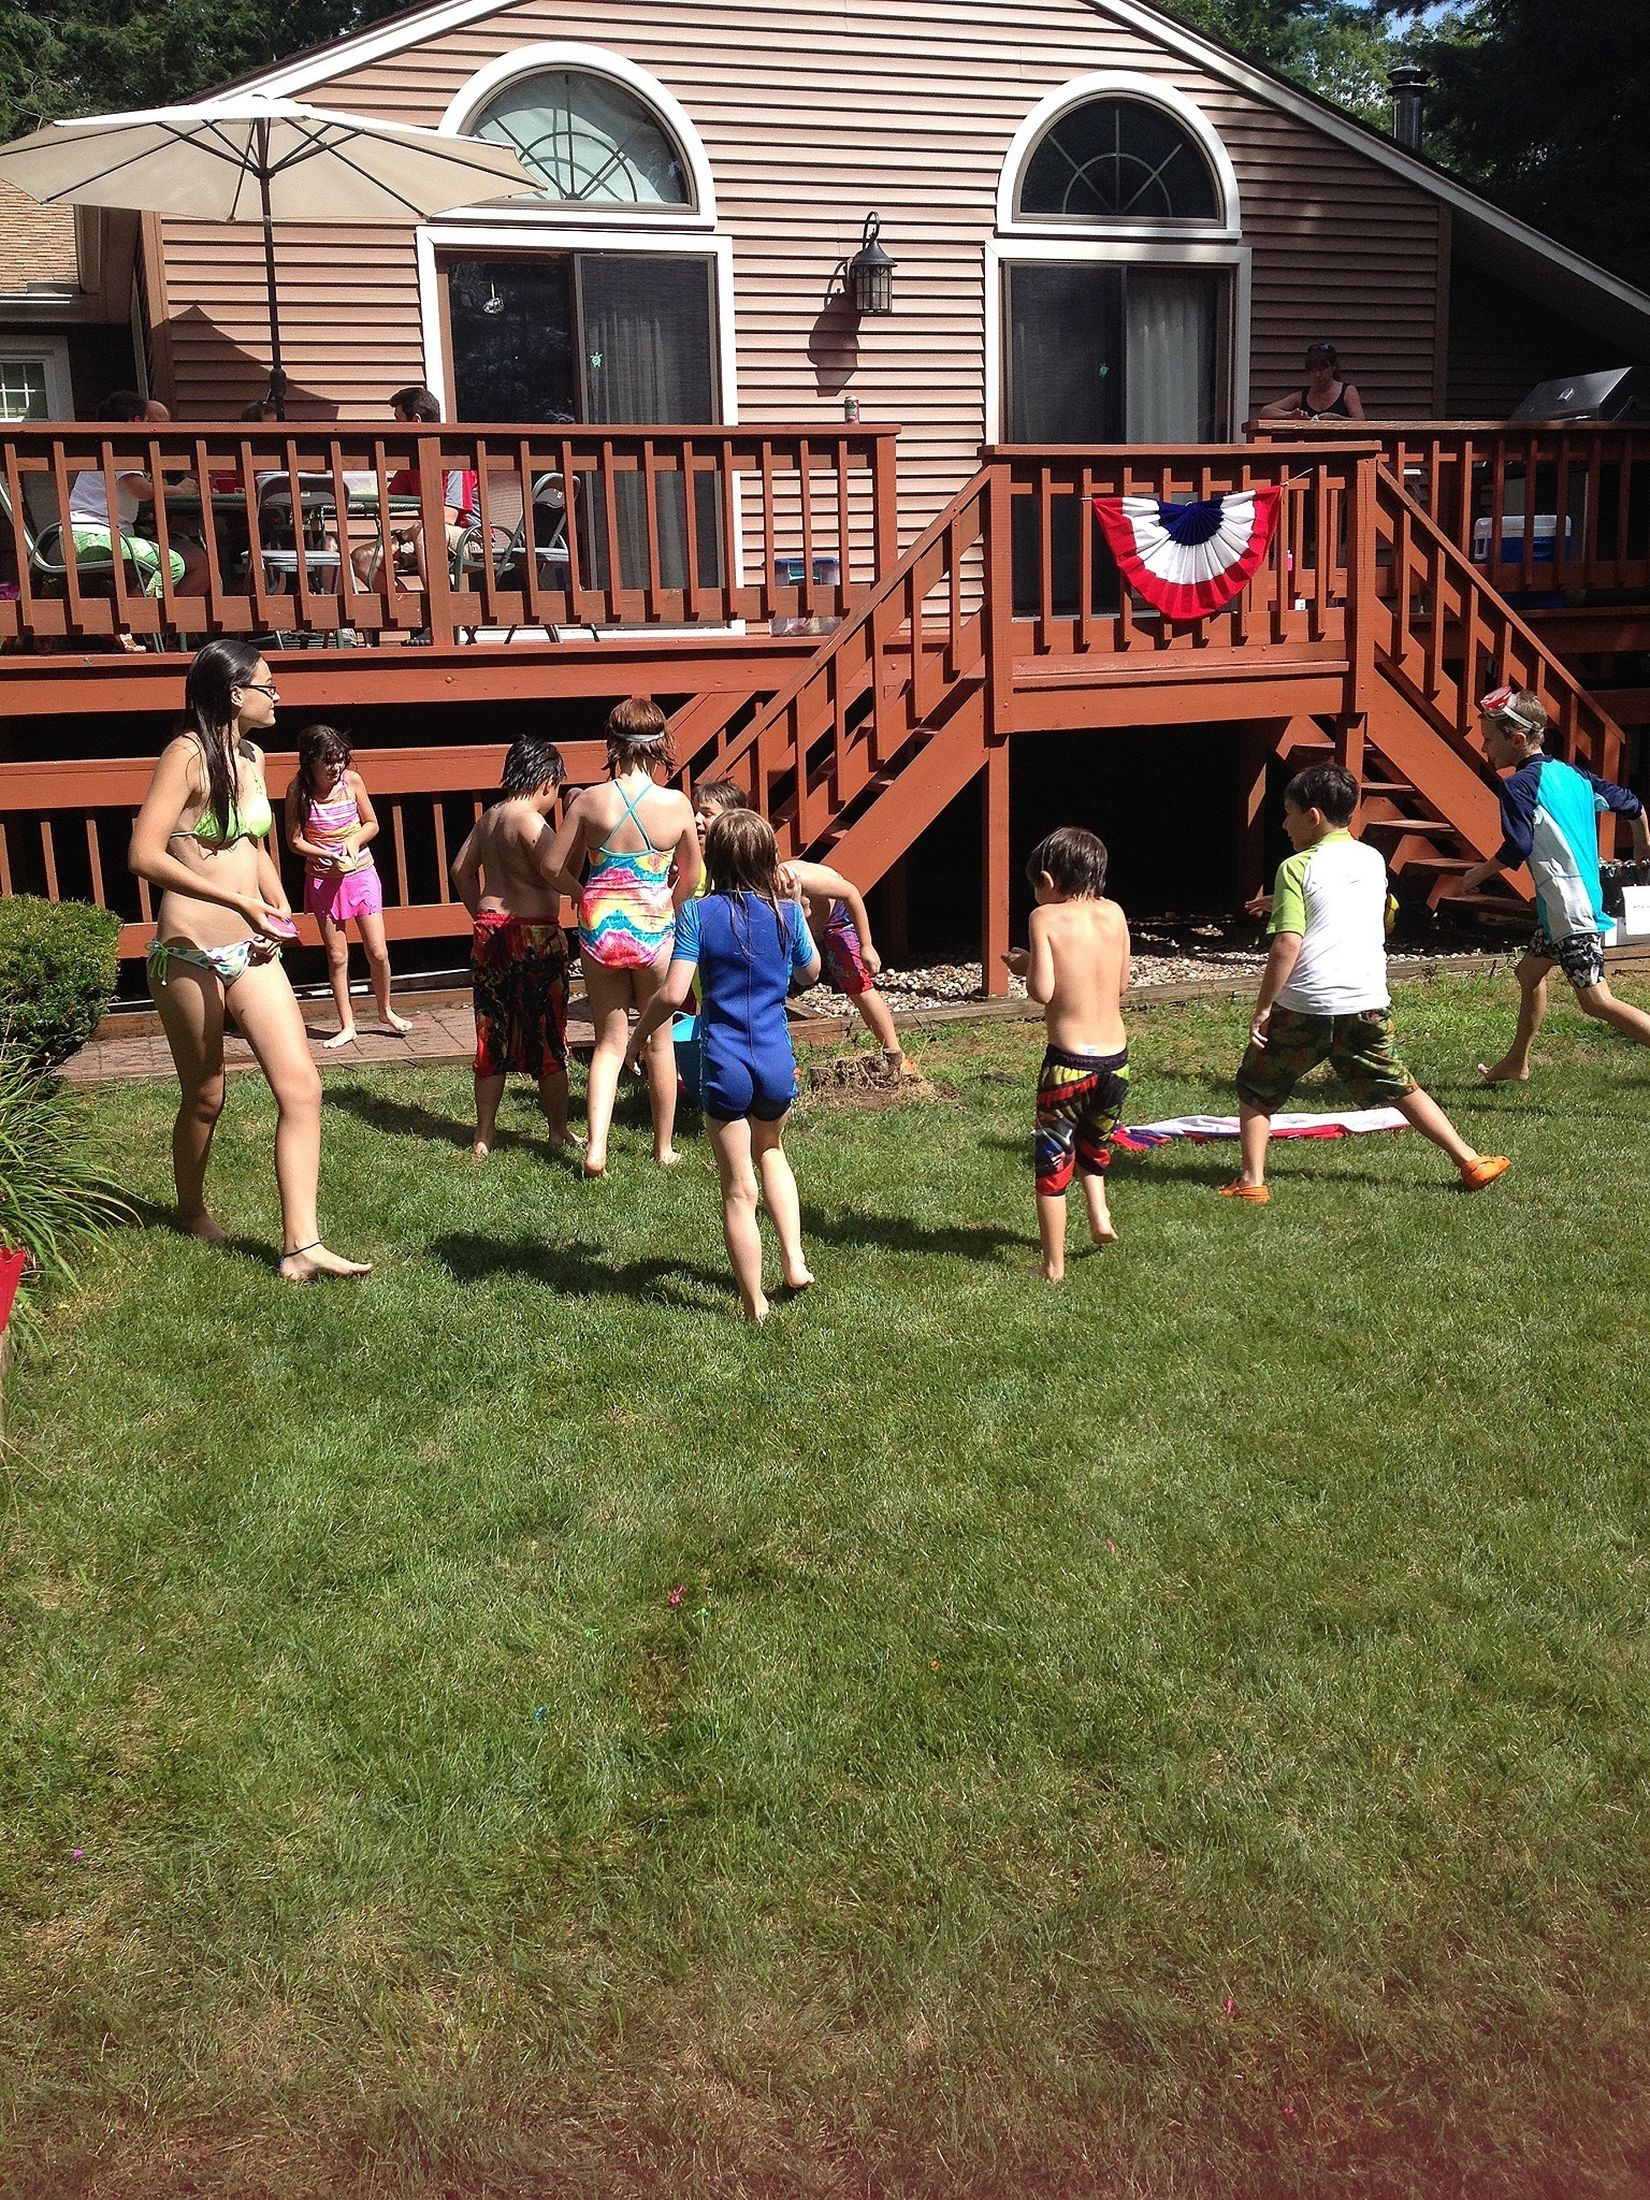 balloon fight :oo they're too cute! Kids Balloon Fight Pool Party